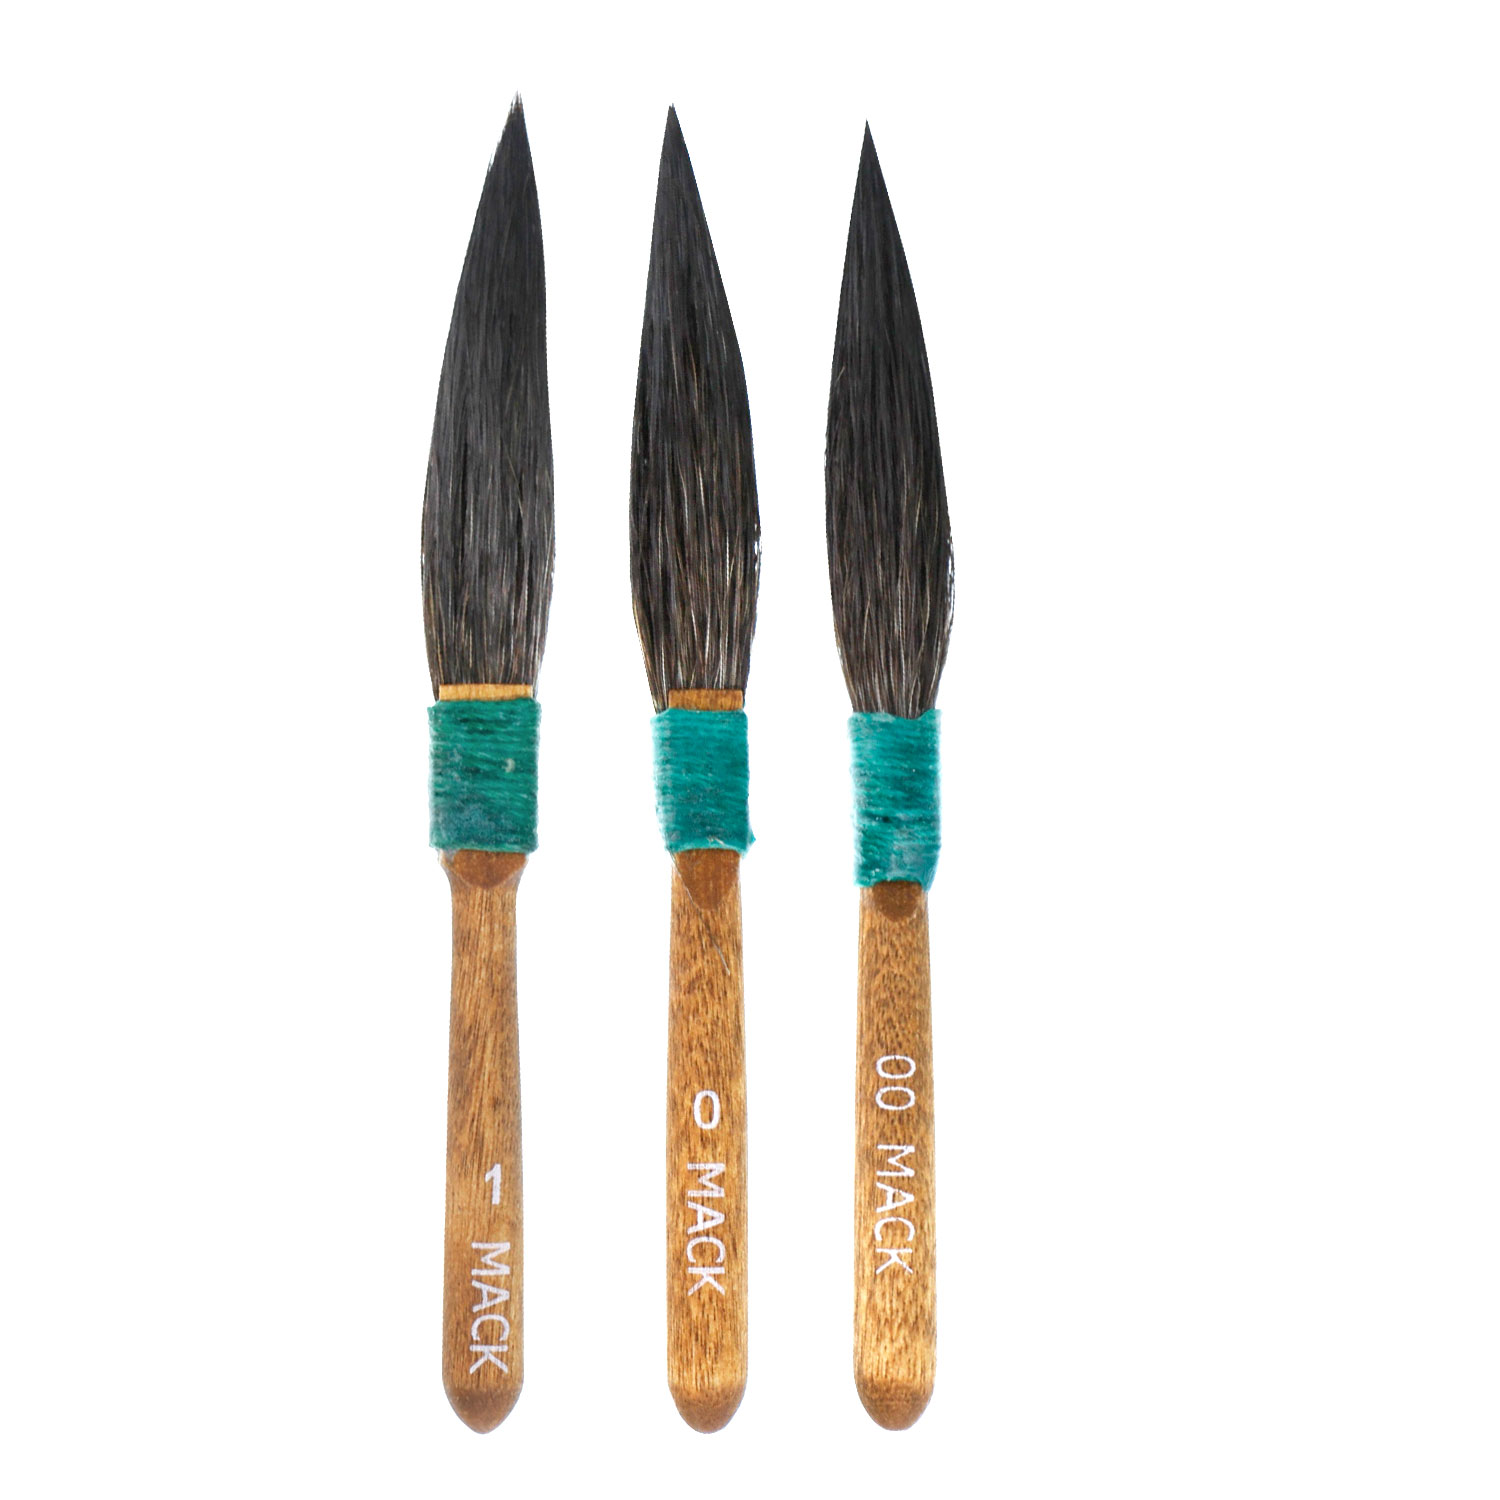 MACK 30 SERIES Squirrel Hair DAGGER STRIPER PINSTRIPING BRUSHES: SET OF 3 BRUSHES